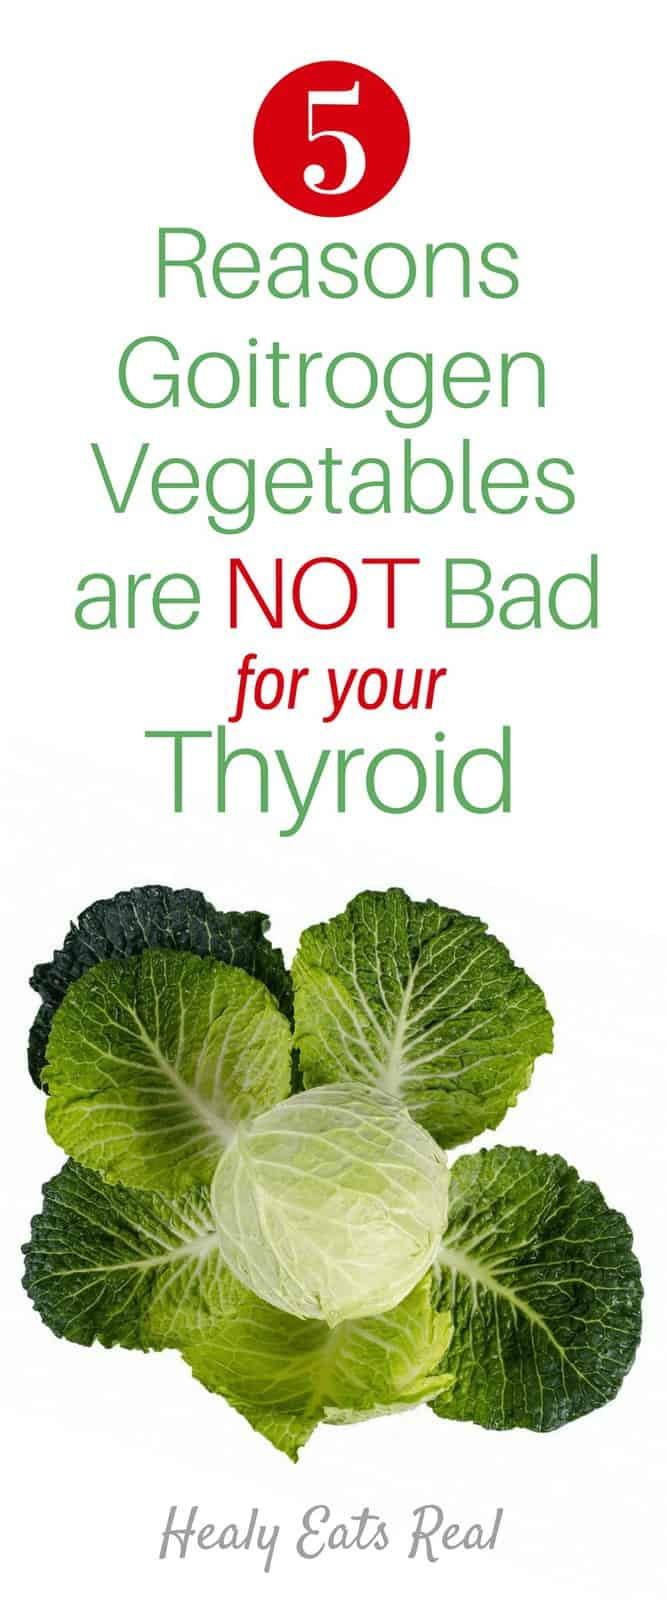 5 Reasons Goitrogens Are NOT Bad For Your Thyroid- If you have hypothyroidism you've probably been told to avoid goitrogens in the form of cruciferous vegetables. Knowing what to eat can be tricky.